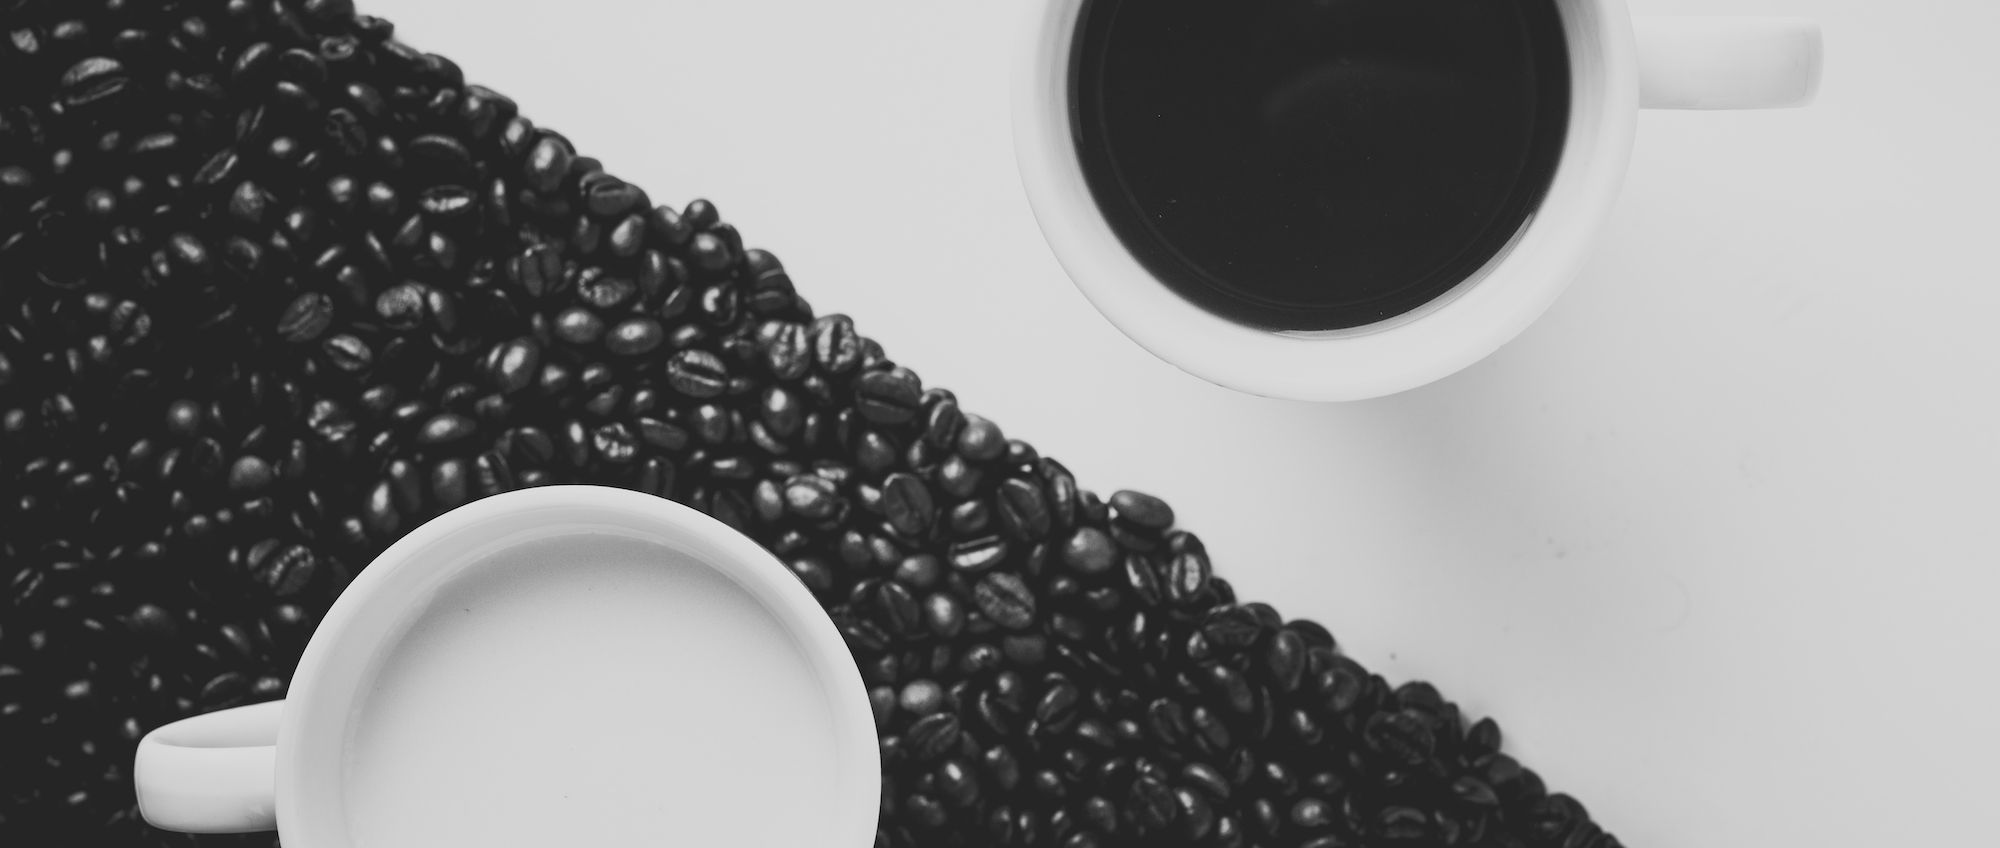 Mugs and coffee beans